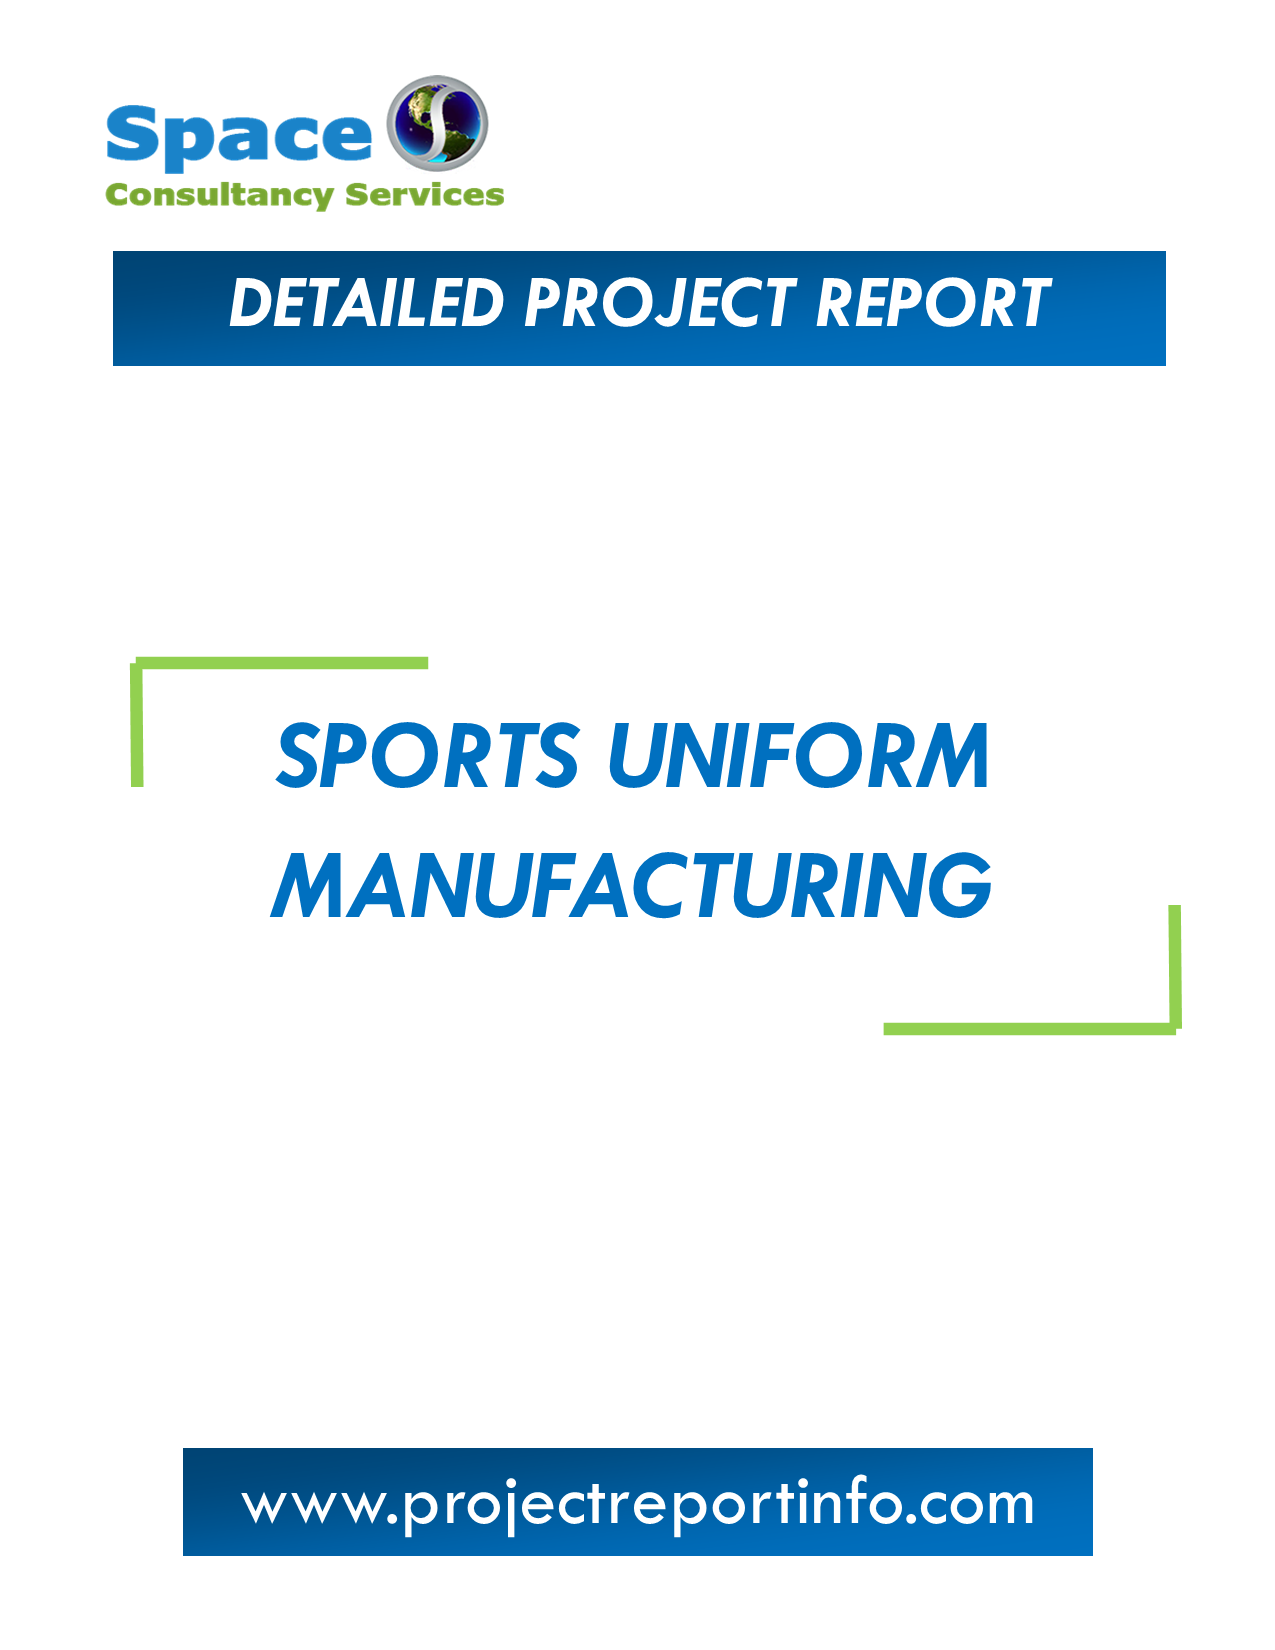 Project Report on Sports Uniform Manufacturing